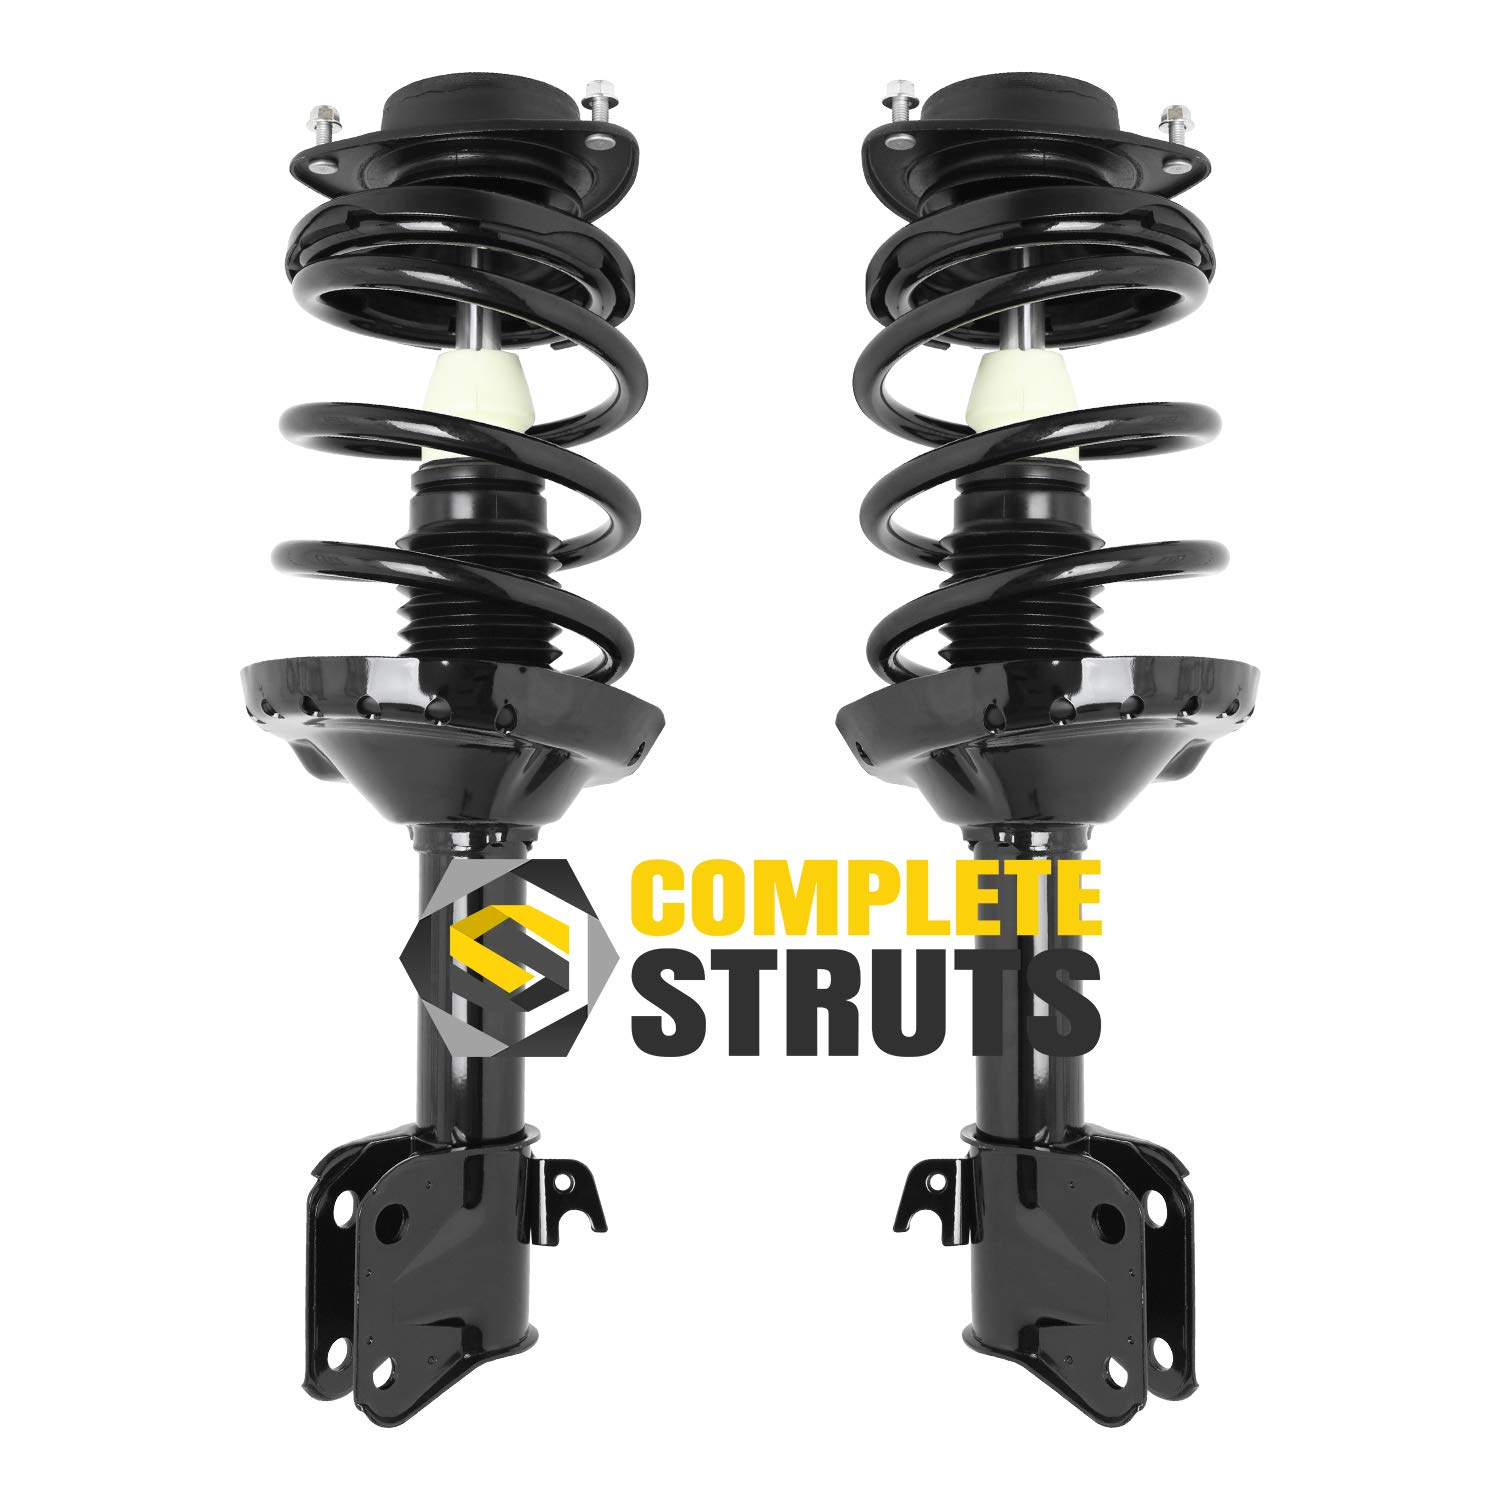 Pair Front Quick Complete Struts /& Coil Spring Assemblies Compatible with 2009-2013 Subaru Forester